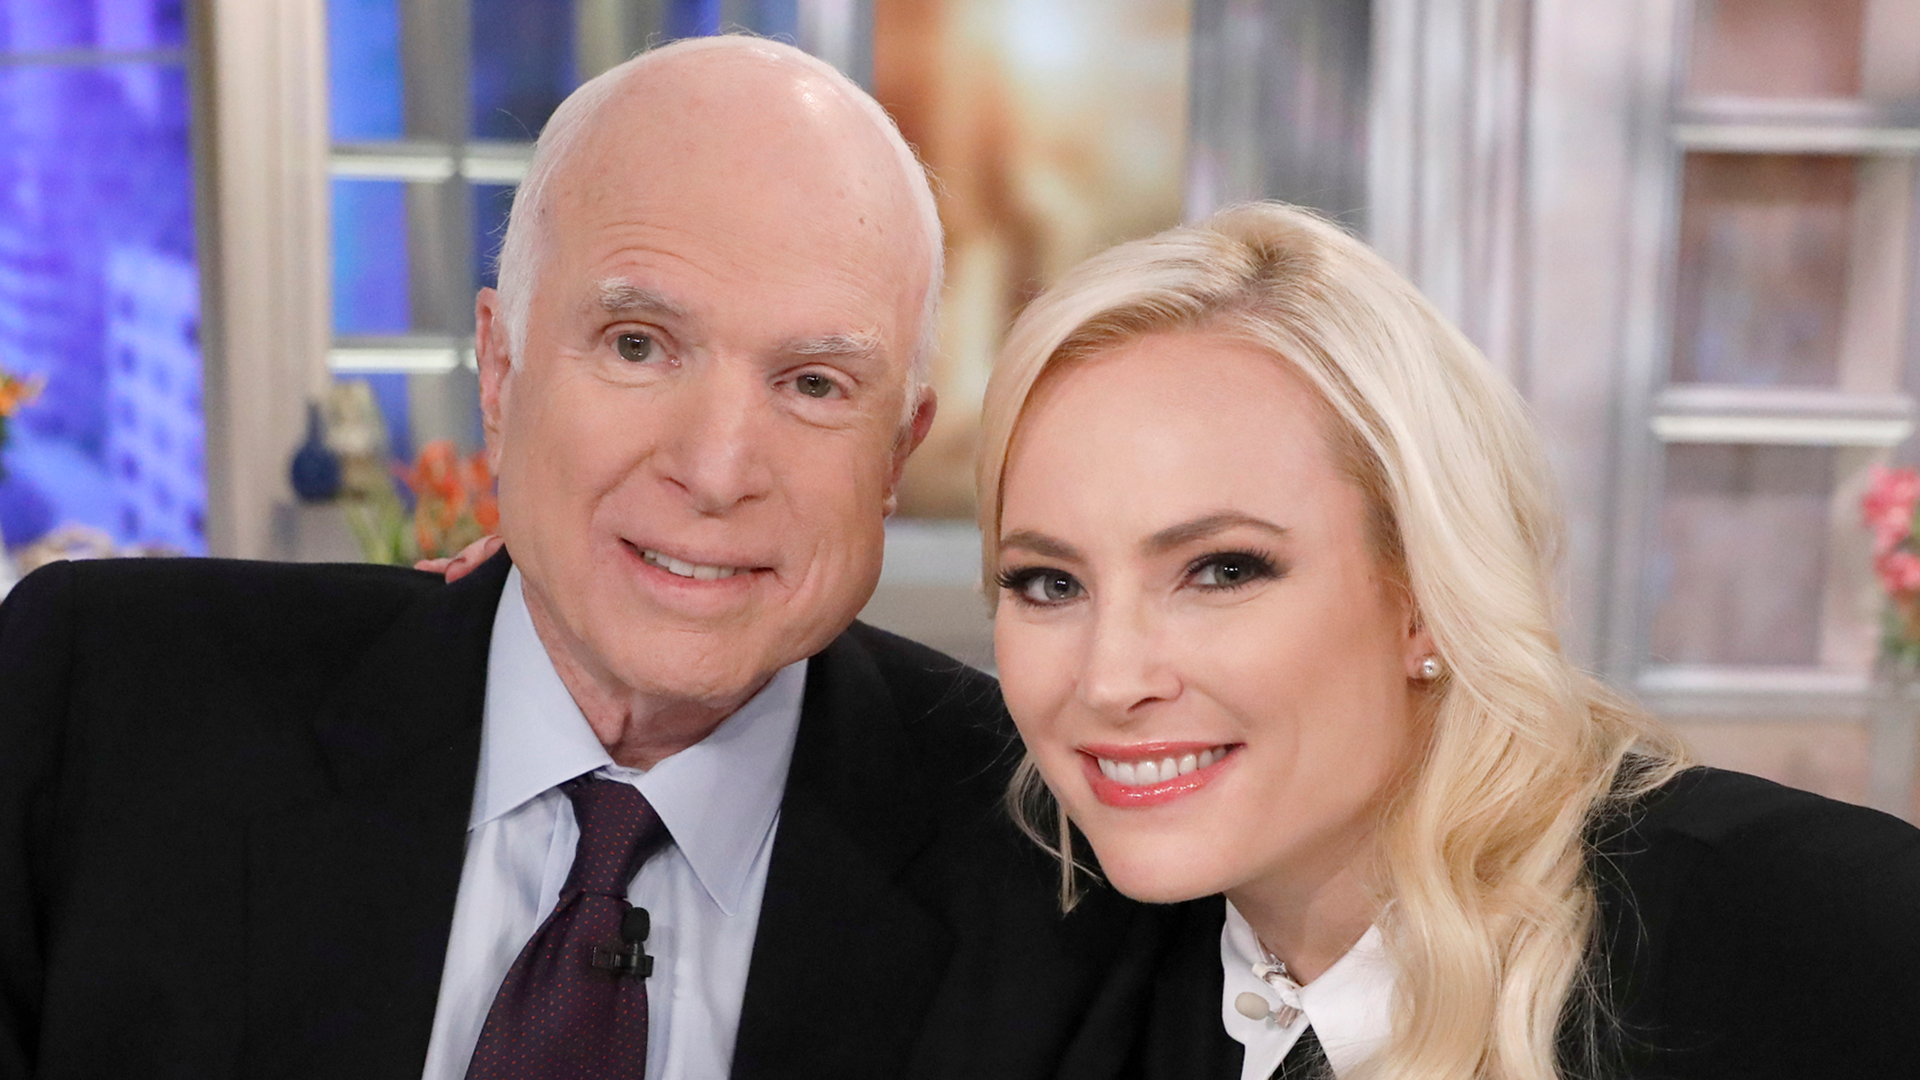 Meghan McCain on how father would have reacted to Capitol insurrection: 'This would have killed him'